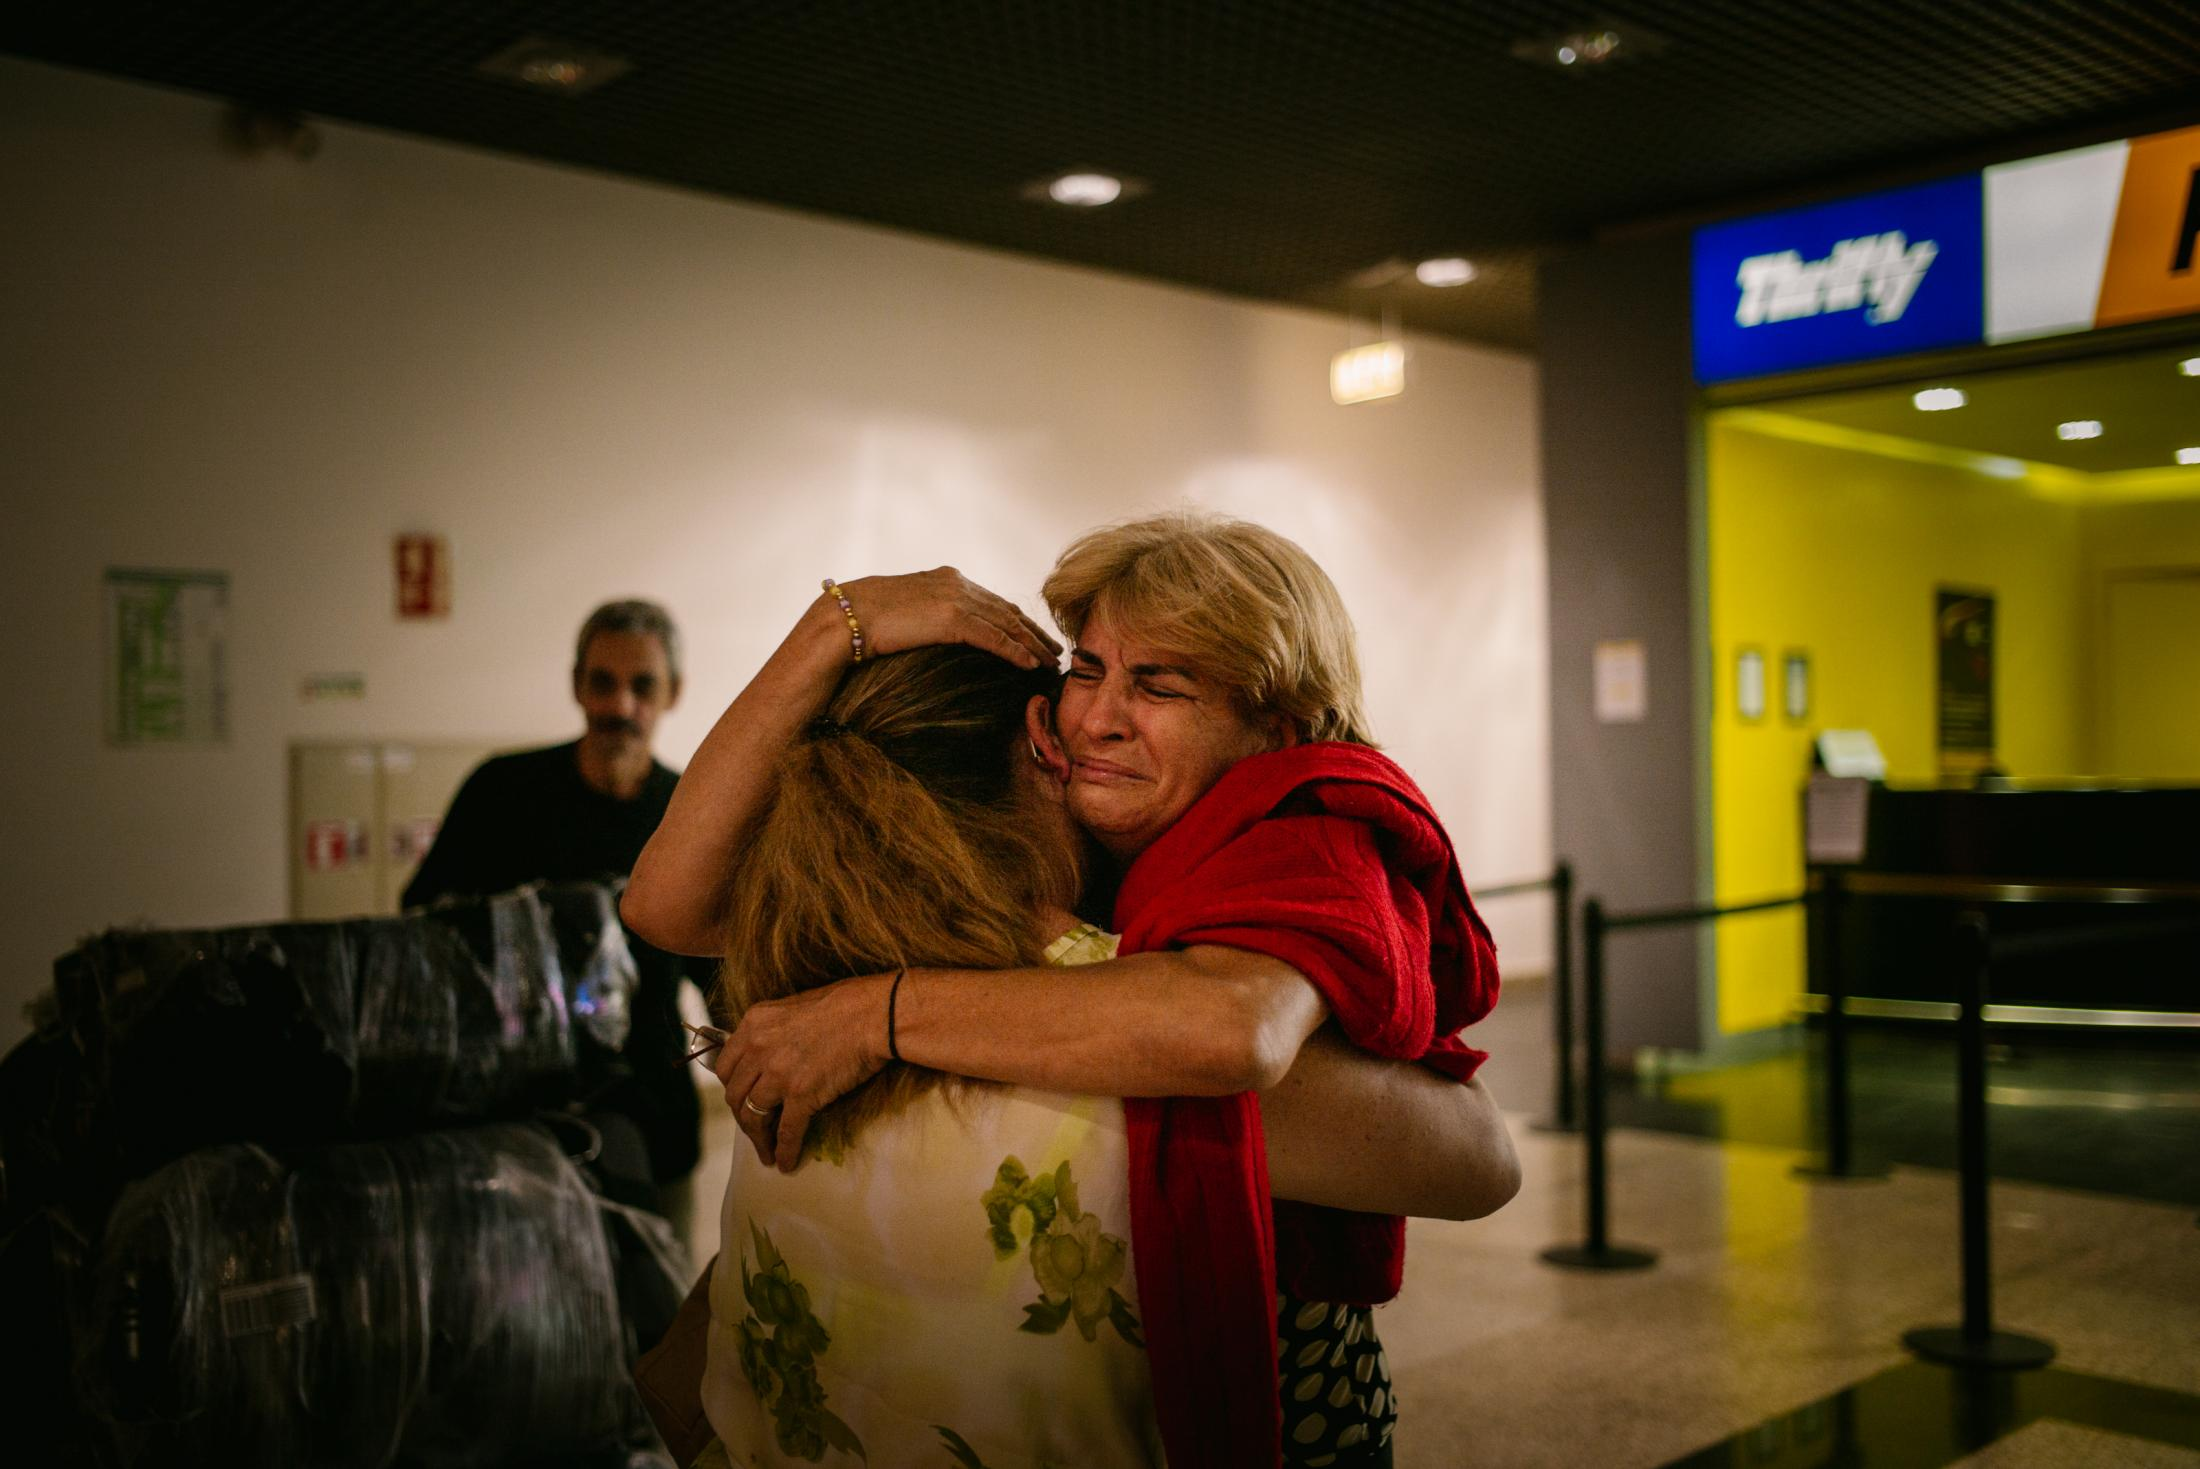 "On a Monday in August 2017, Rita Jardim Aguiar, 55, (seen from the front) and Carlos Aguiar, 64, (in the background) are welcomed by Rita's sister at the Funchal airport in Madeira. Madeira, Portugal. 21st August 2017. Carlos and Rita emigrated to Venezuela in 1981 chasing their ""Venezuelan Dream"". In August 2017 they had to abandon Venezuela. They left behind all they had fought for and their 3 oldest kids, including their daughter Carla Aguiar. Carla´s two youngest siblings (both born in Venezuela), Stefany (14) and Jhon (18) moved with Rita and Carlos to Madeira. After Chávez´s death in 2013, Nicolás Maduro came to power and the number of returnees to Madeira has increased significantly since then. Maduro has transformed the country into a dictatorship and brought it into a crisis: Food and medicines are scarce, the infrastructure is dilapidated, and the electricity is always cut. Rita and Carlos saw no future in the country for themselves and their family."